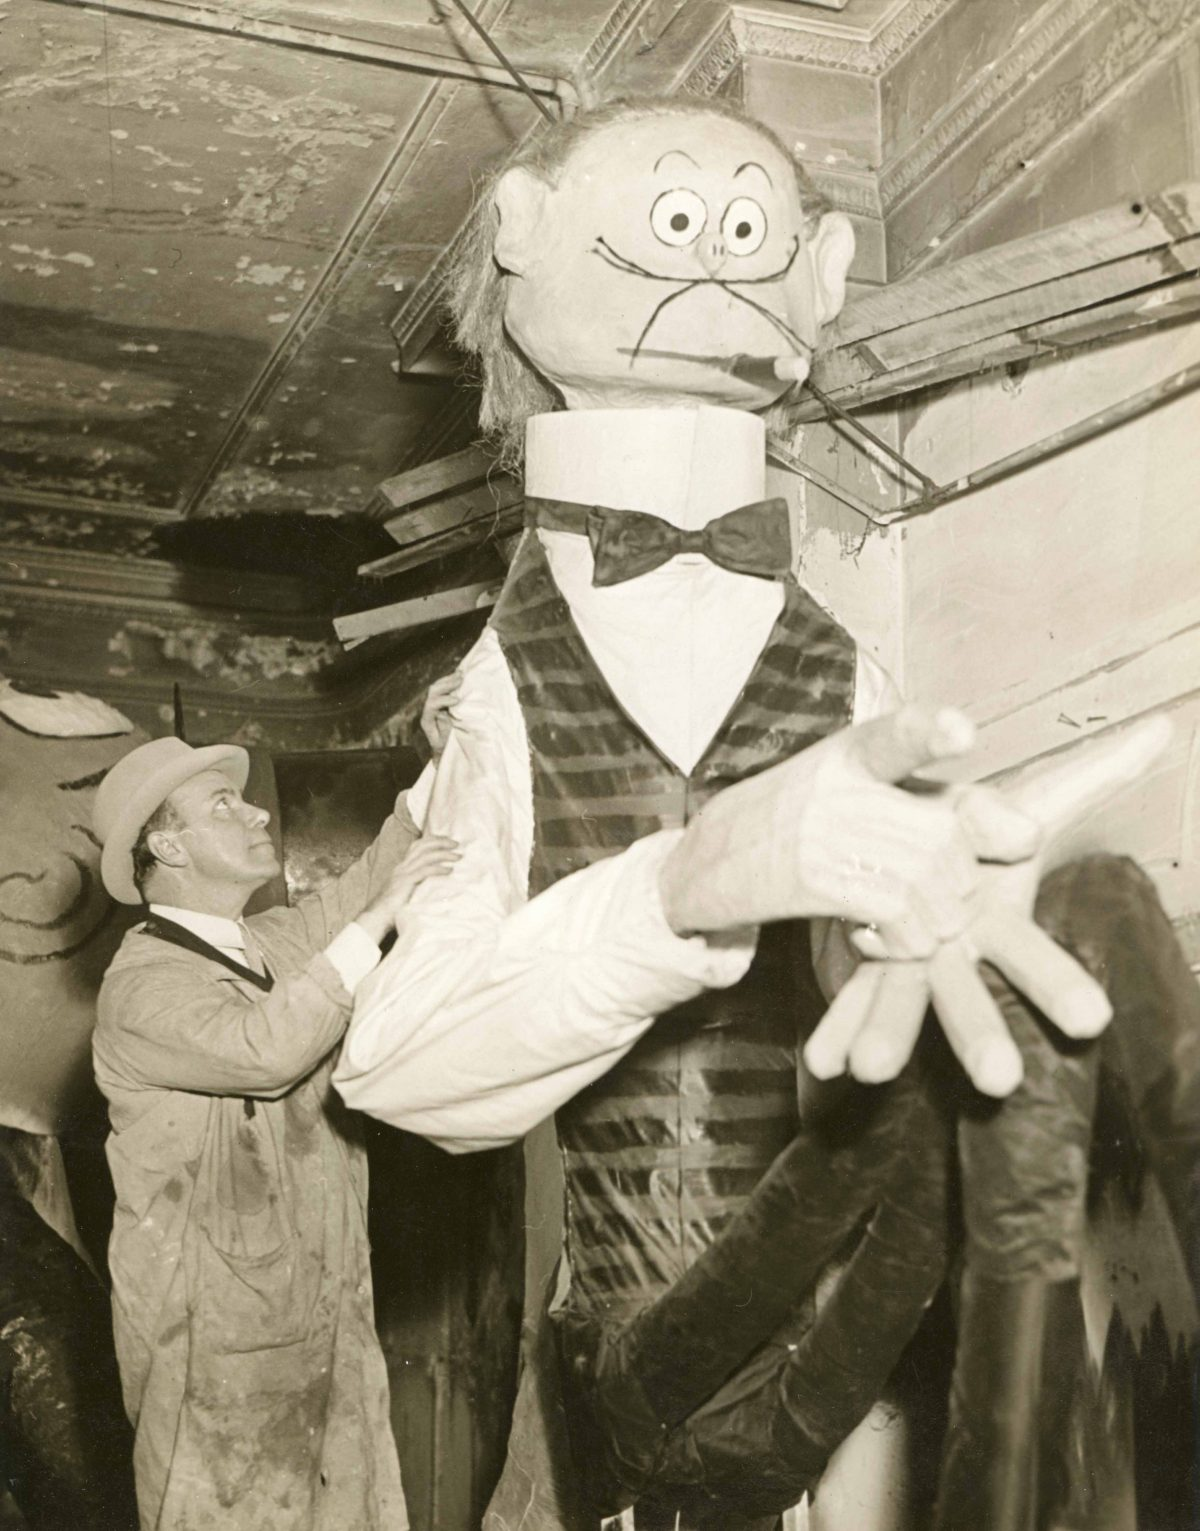 Tony Sarg with one of his parade figures. Studio: Publisher: Fotograms News Photo Service, Inc. 381 Fourth Ave., New York City